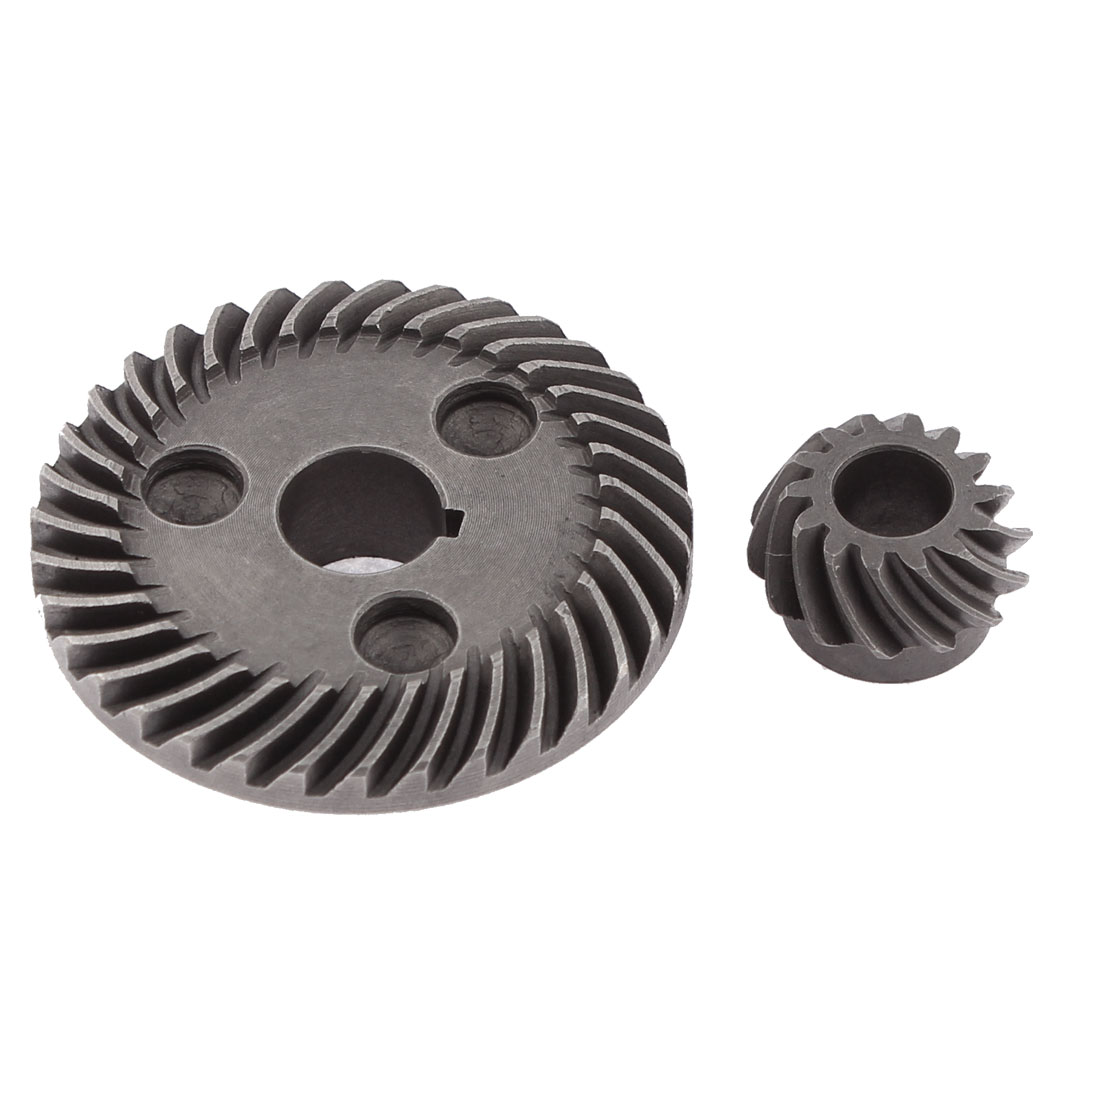 Electric Power Tool Repairing Angle Grinder Spiral Bevel Gear Set for Hitachi 100